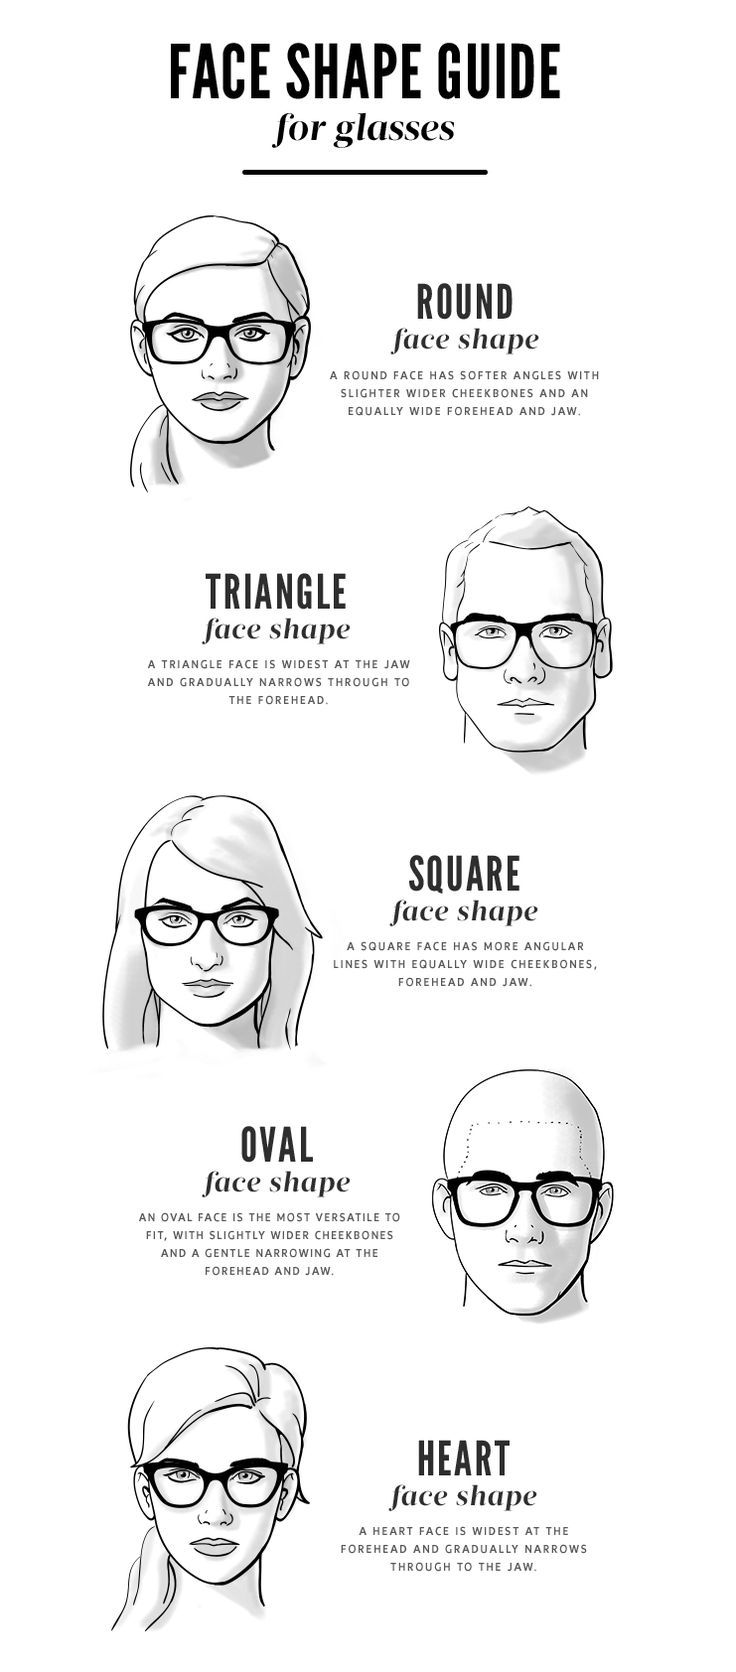 Glasses Frames On Face Shape : Face Shape Guide for Glasses Oakley sunglasses, For ...